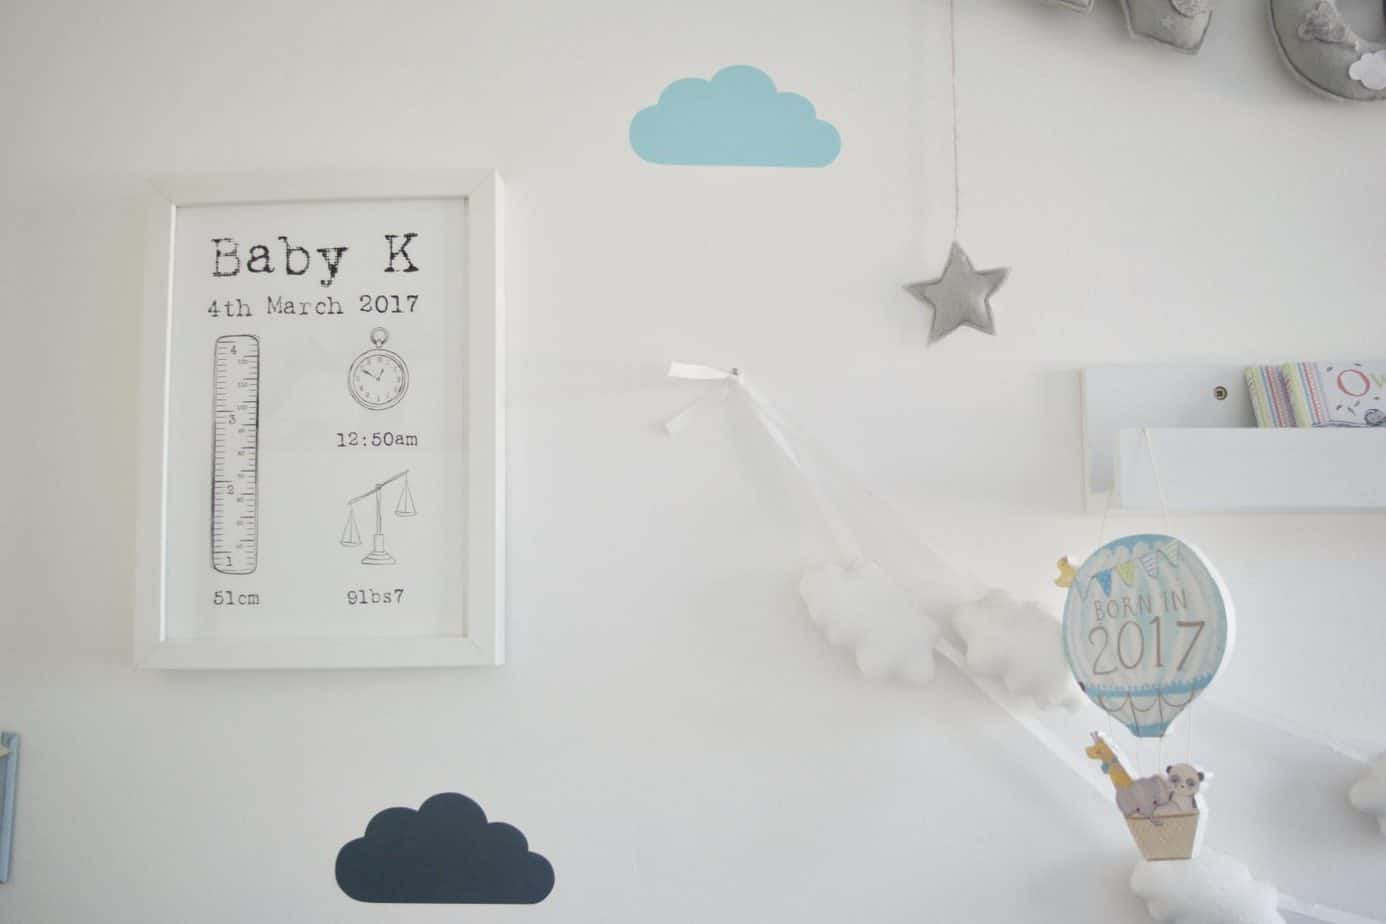 Monochrome personalised nursery print on Baby K's wall